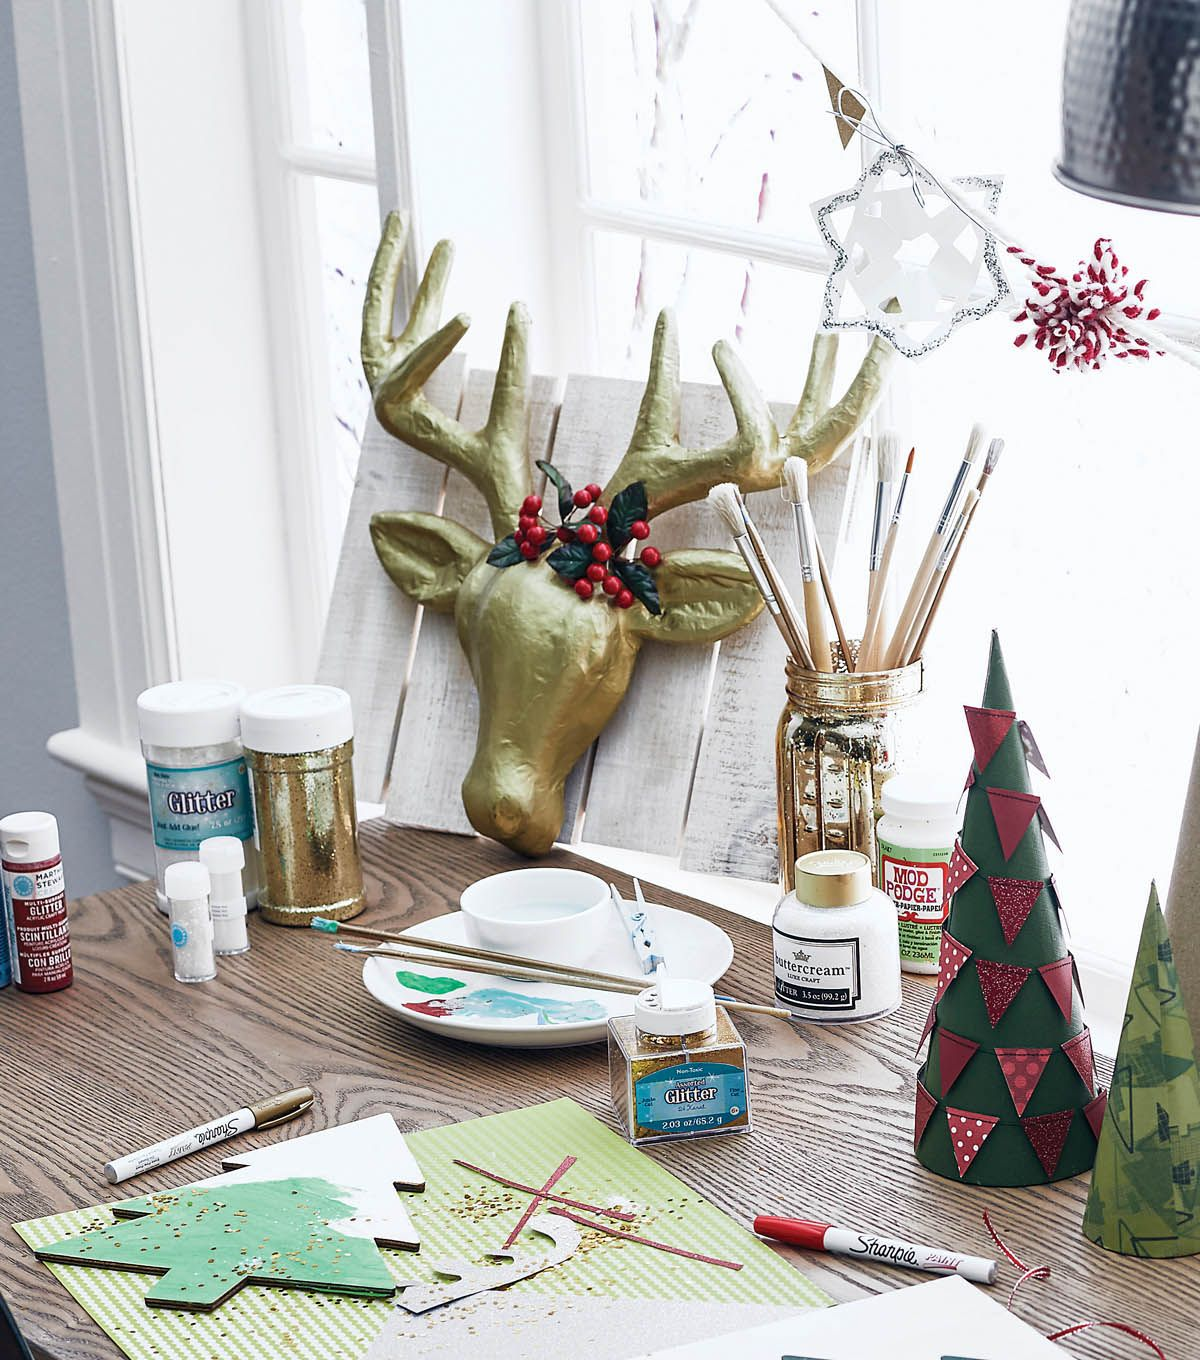 How to make a paper mache deer head this looks so cool and if you